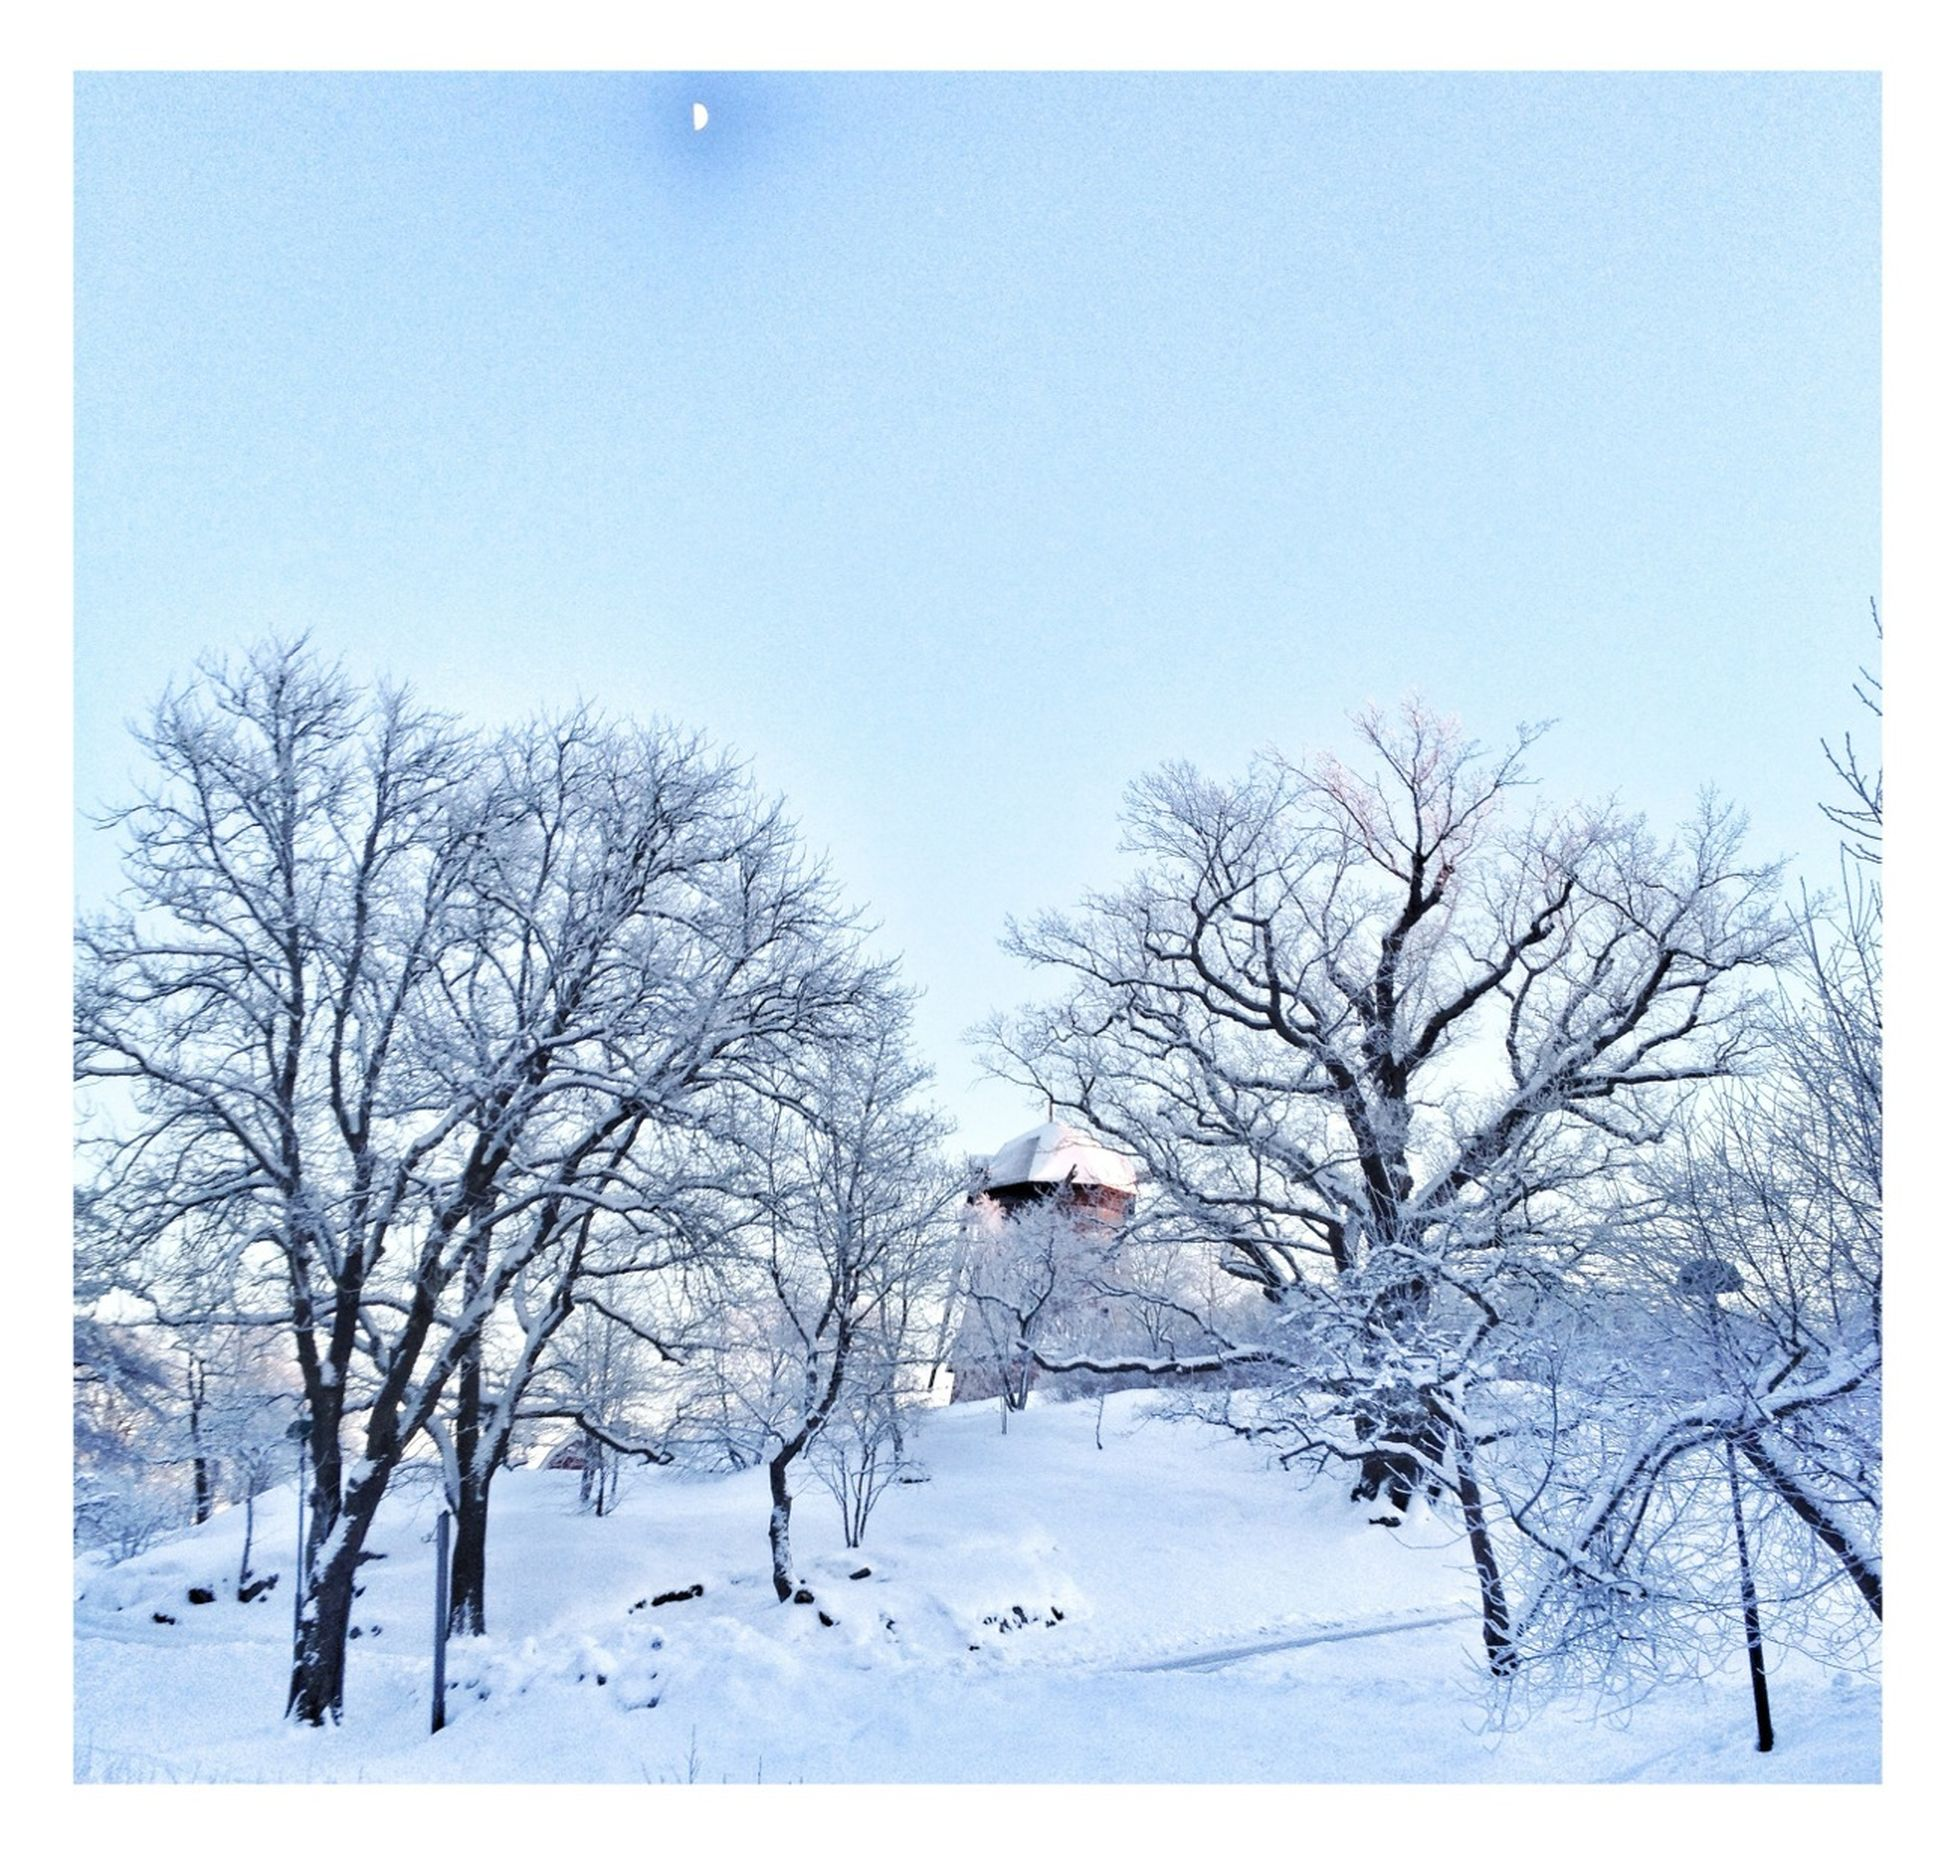 postprocessing, cold, cold temperature, winter, weather, tranquility